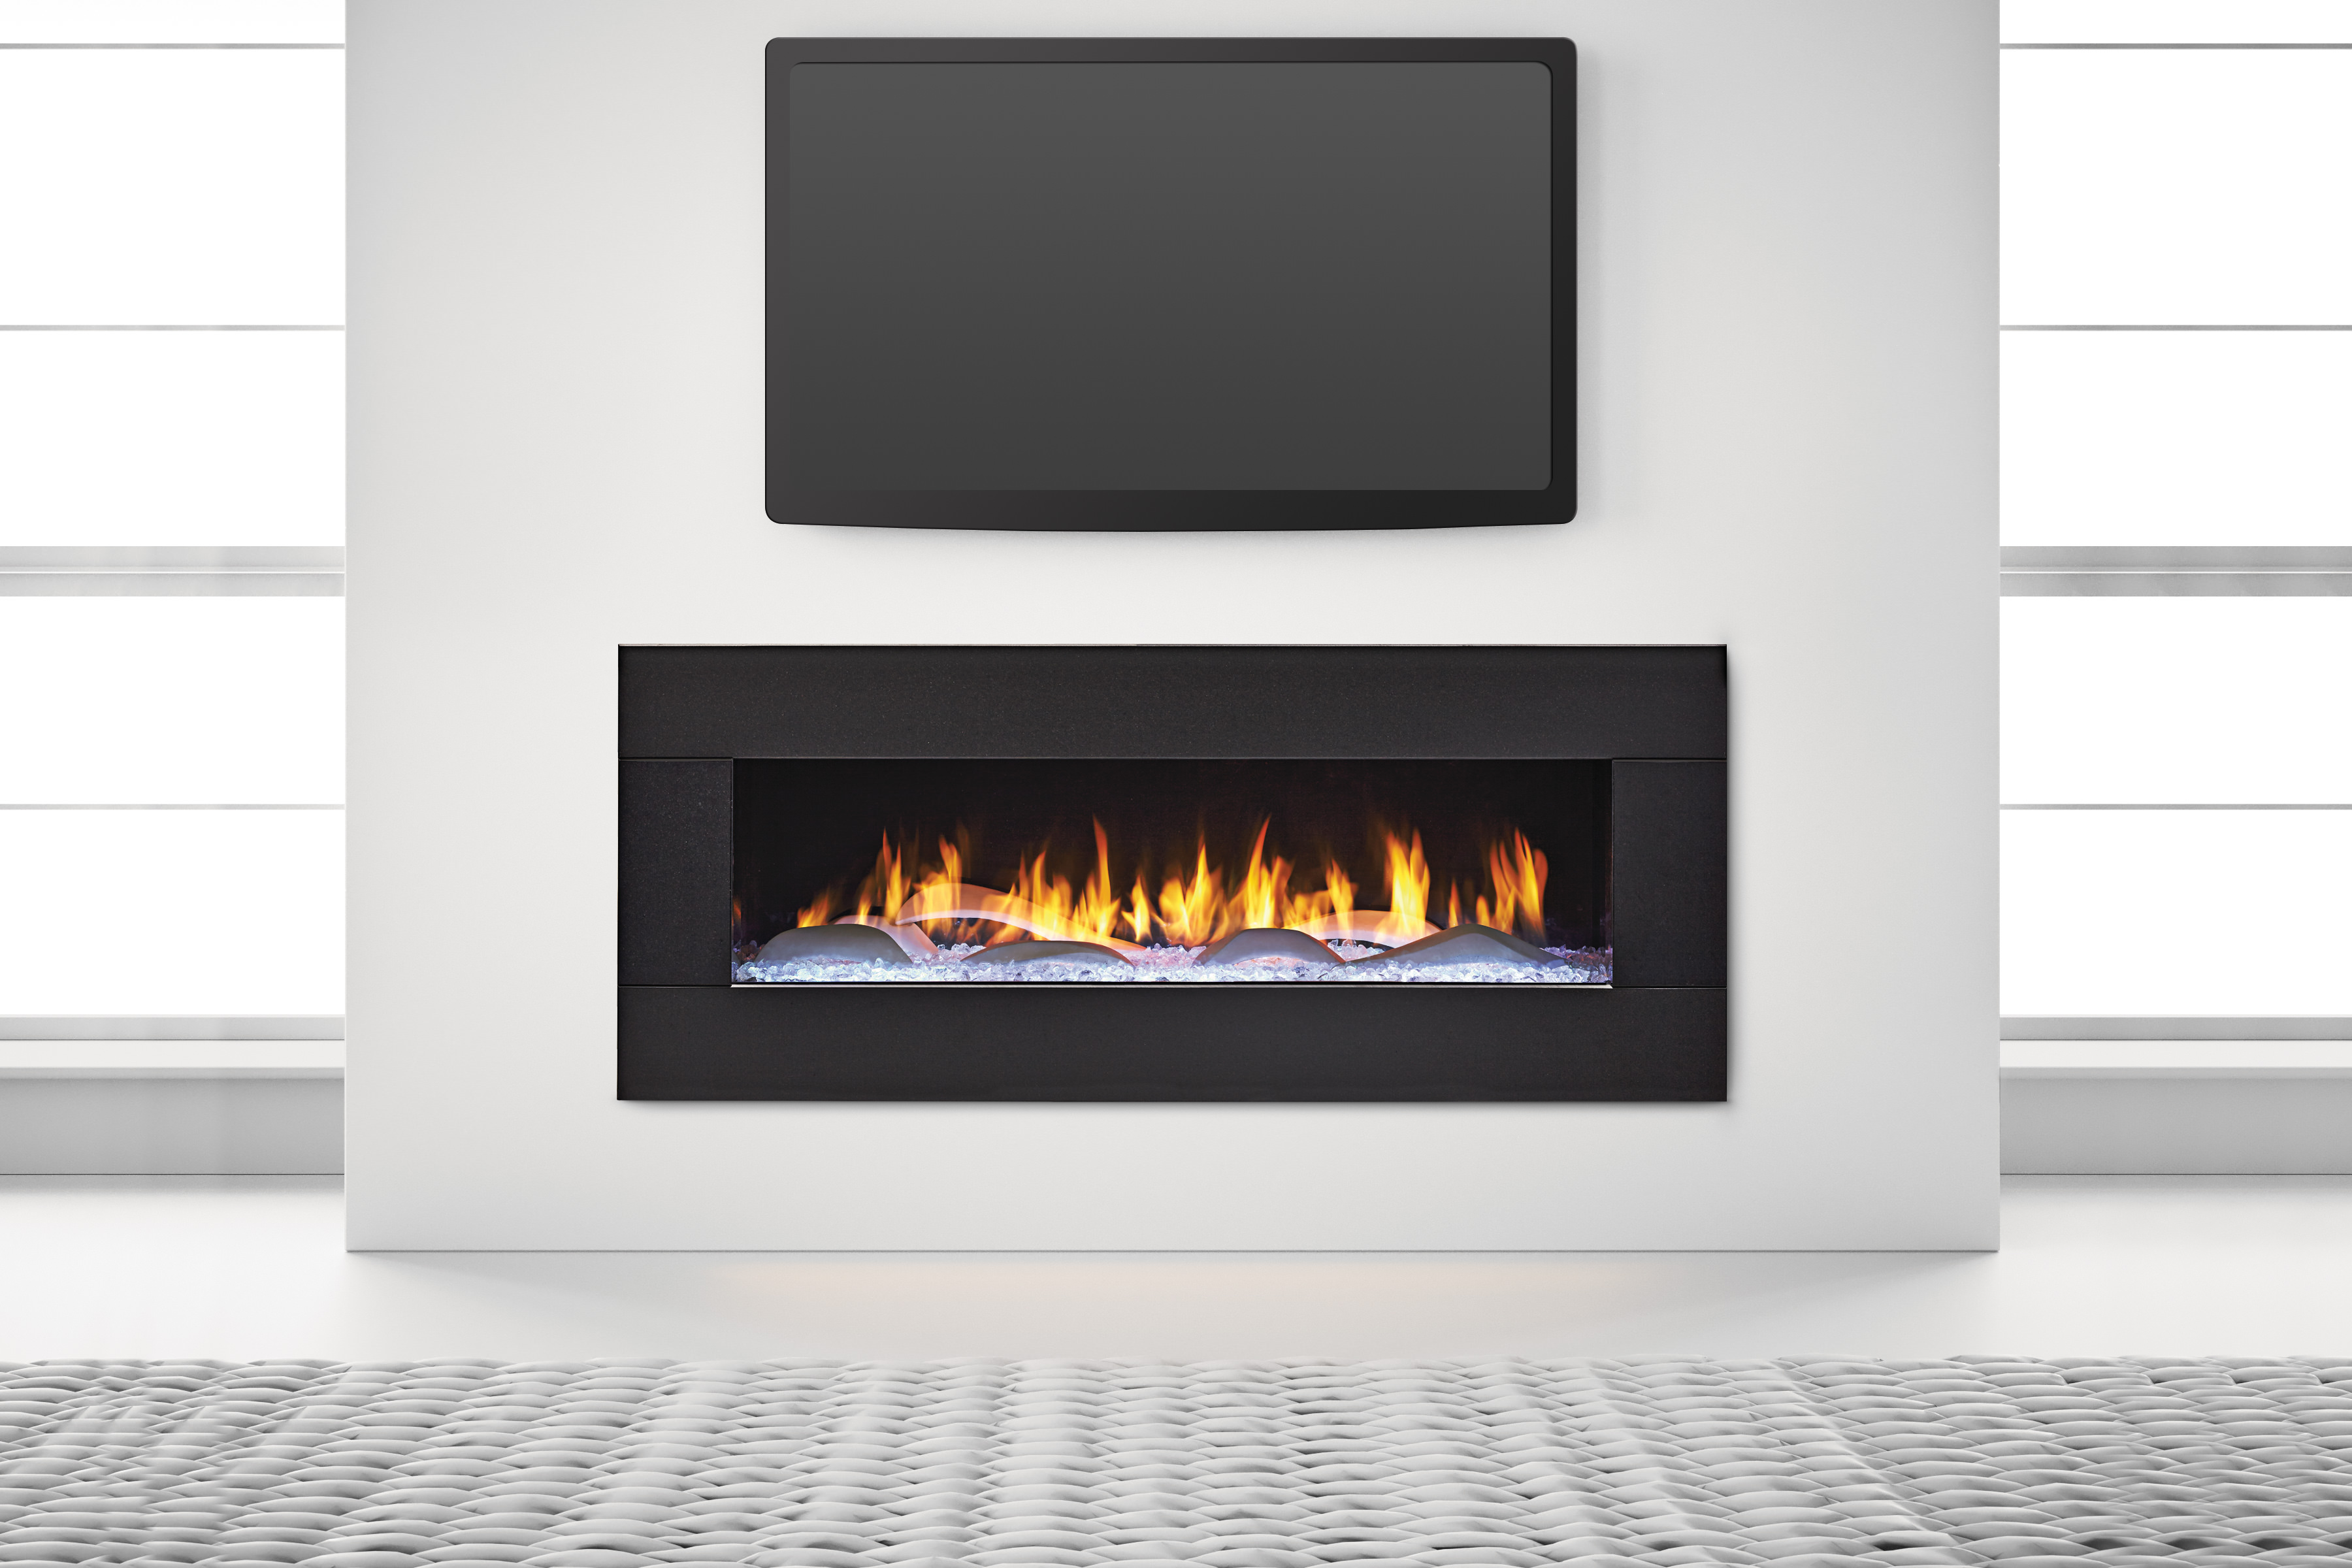 Glass Screen For Gas Fireplace Heat Glo Primo Series Gas Fireplace Fireplace Gallery Of